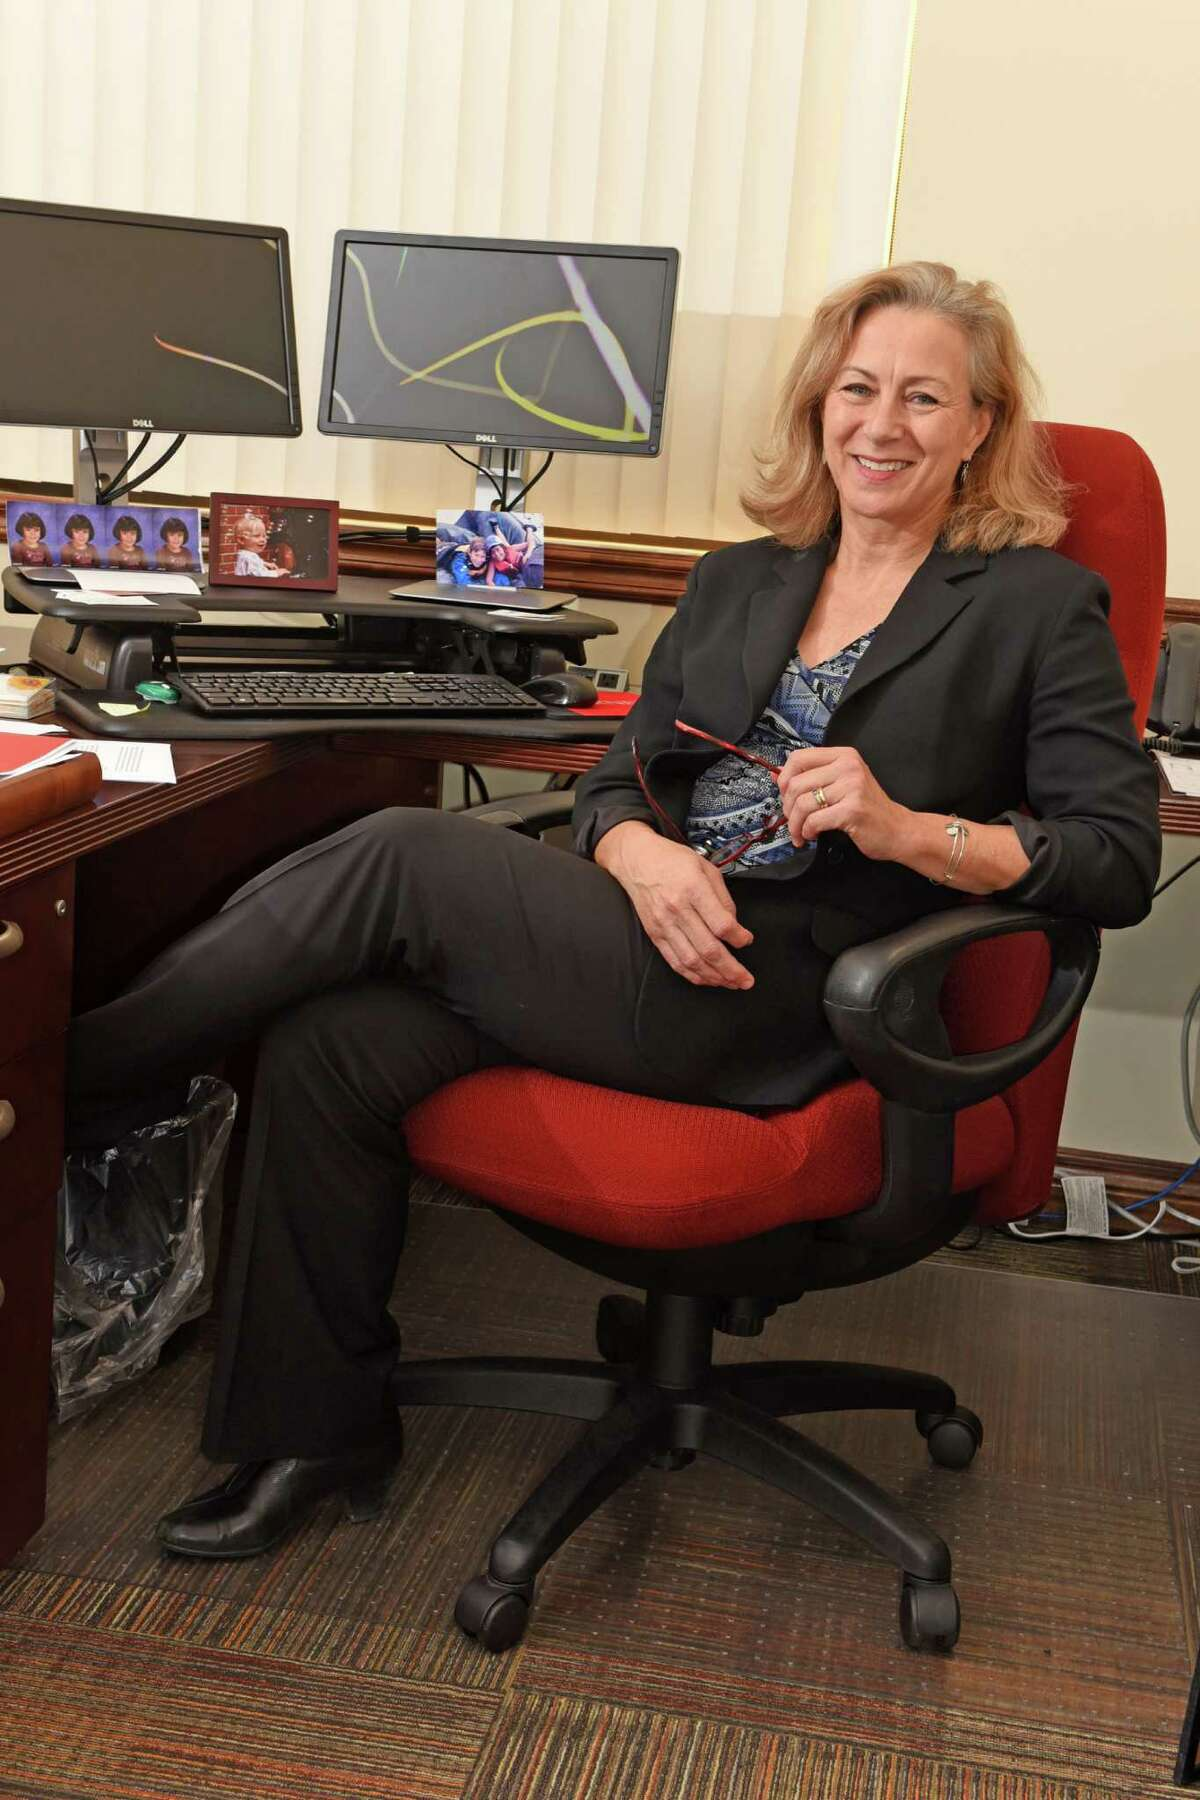 Bea Grause, new president for The Healthcare Association of New York State (HANYS), sits at her desk in her office on Monday, Nov. 14, 2016 in Rensselaer, N.Y. (Lori Van Buren / Times Union)